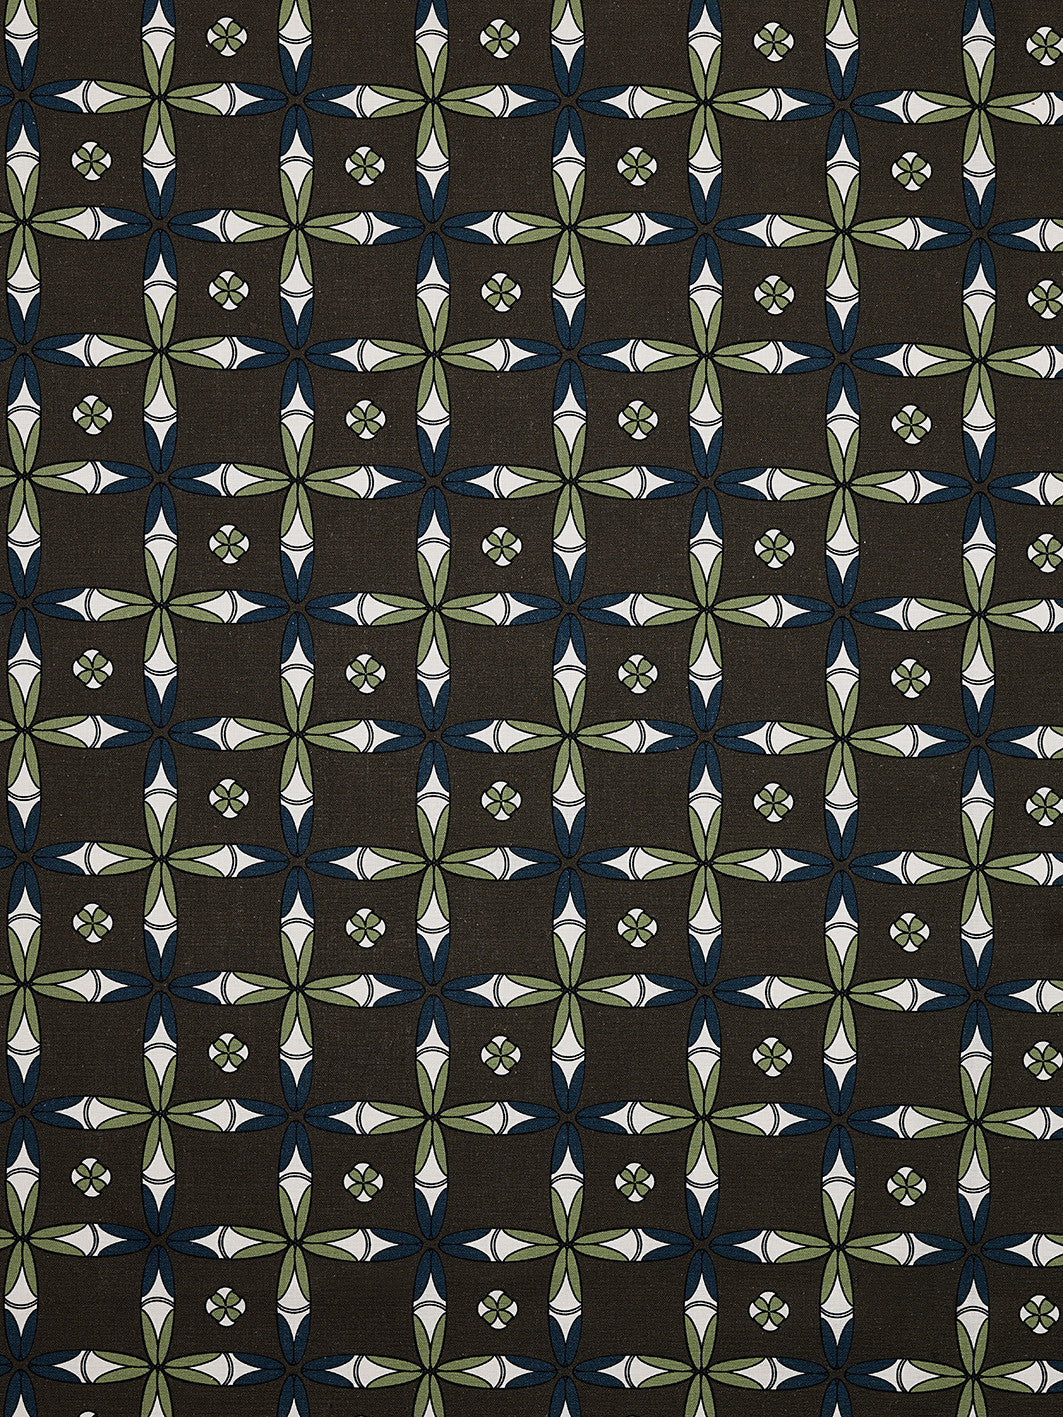 Navajo Geometric Ethnic Pattern Cotton Linen Home Decor Fabric by the meter or by the yard for curtains, blinds, upholstery - Stone Grey - Canada (USA)